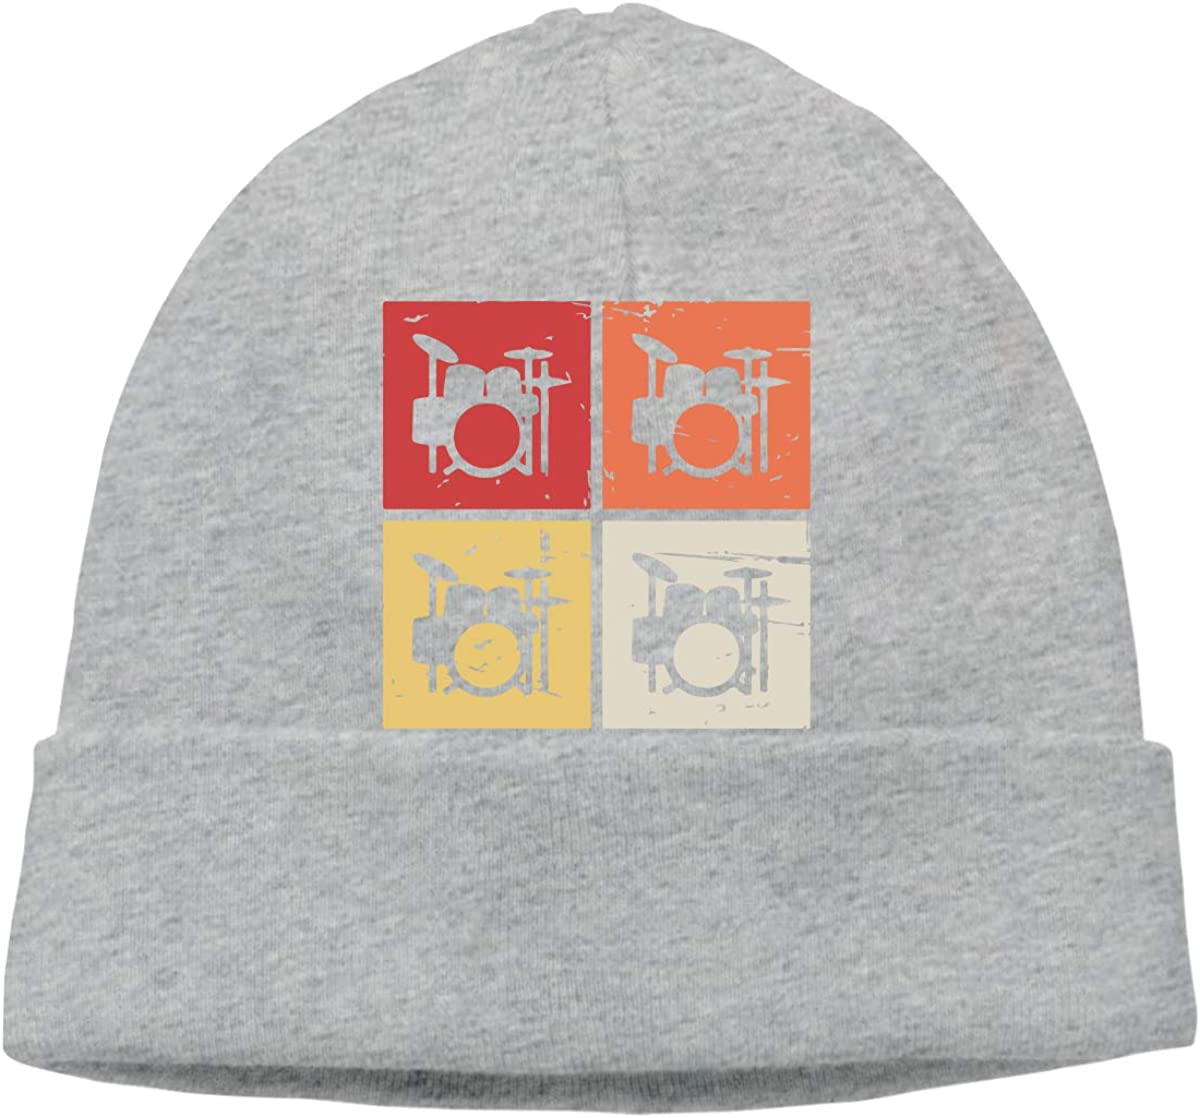 Cotton Skull Cap Mens and Womens Retro Vintage Drum Kits Knitted Hat